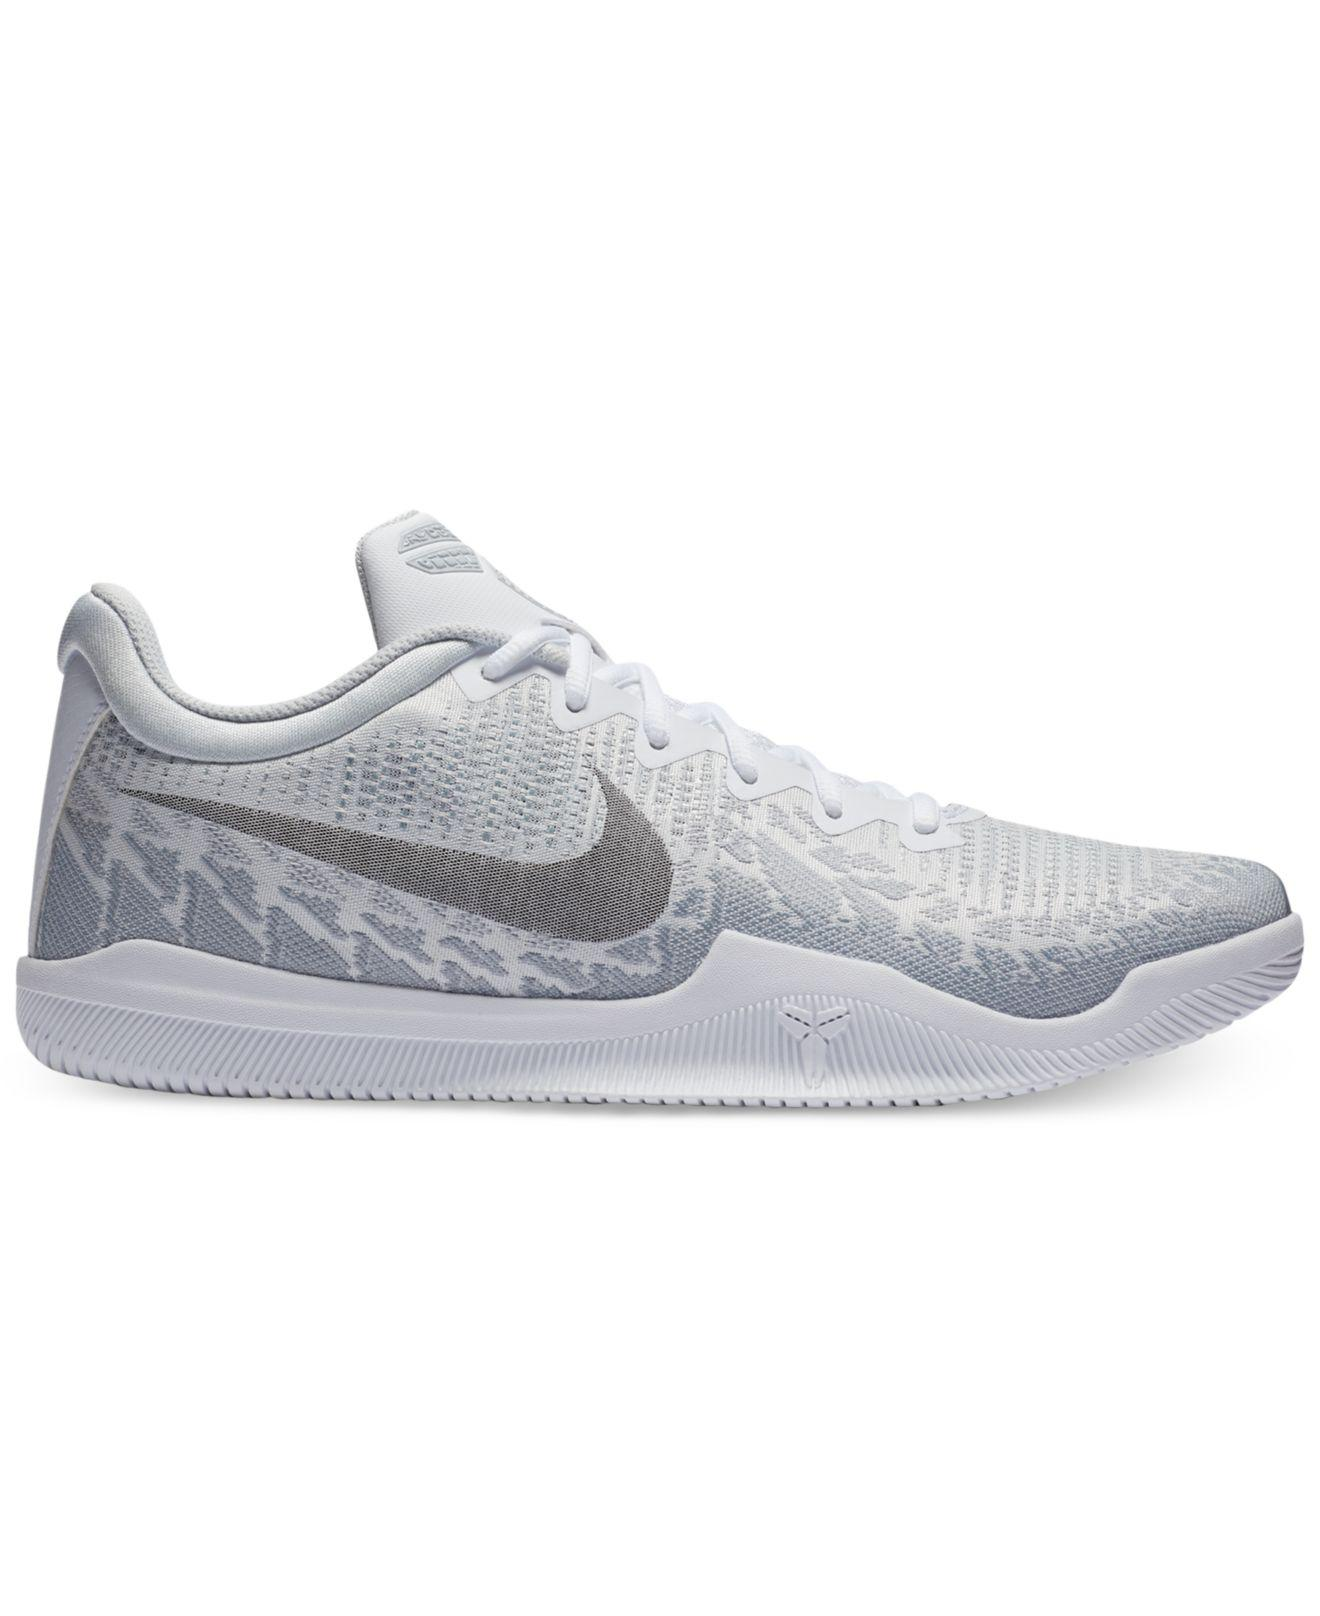 size 40 307ba 411fe Nike Kobe Mamba Rage Basketball Sneakers From Finish Line in Gray ...